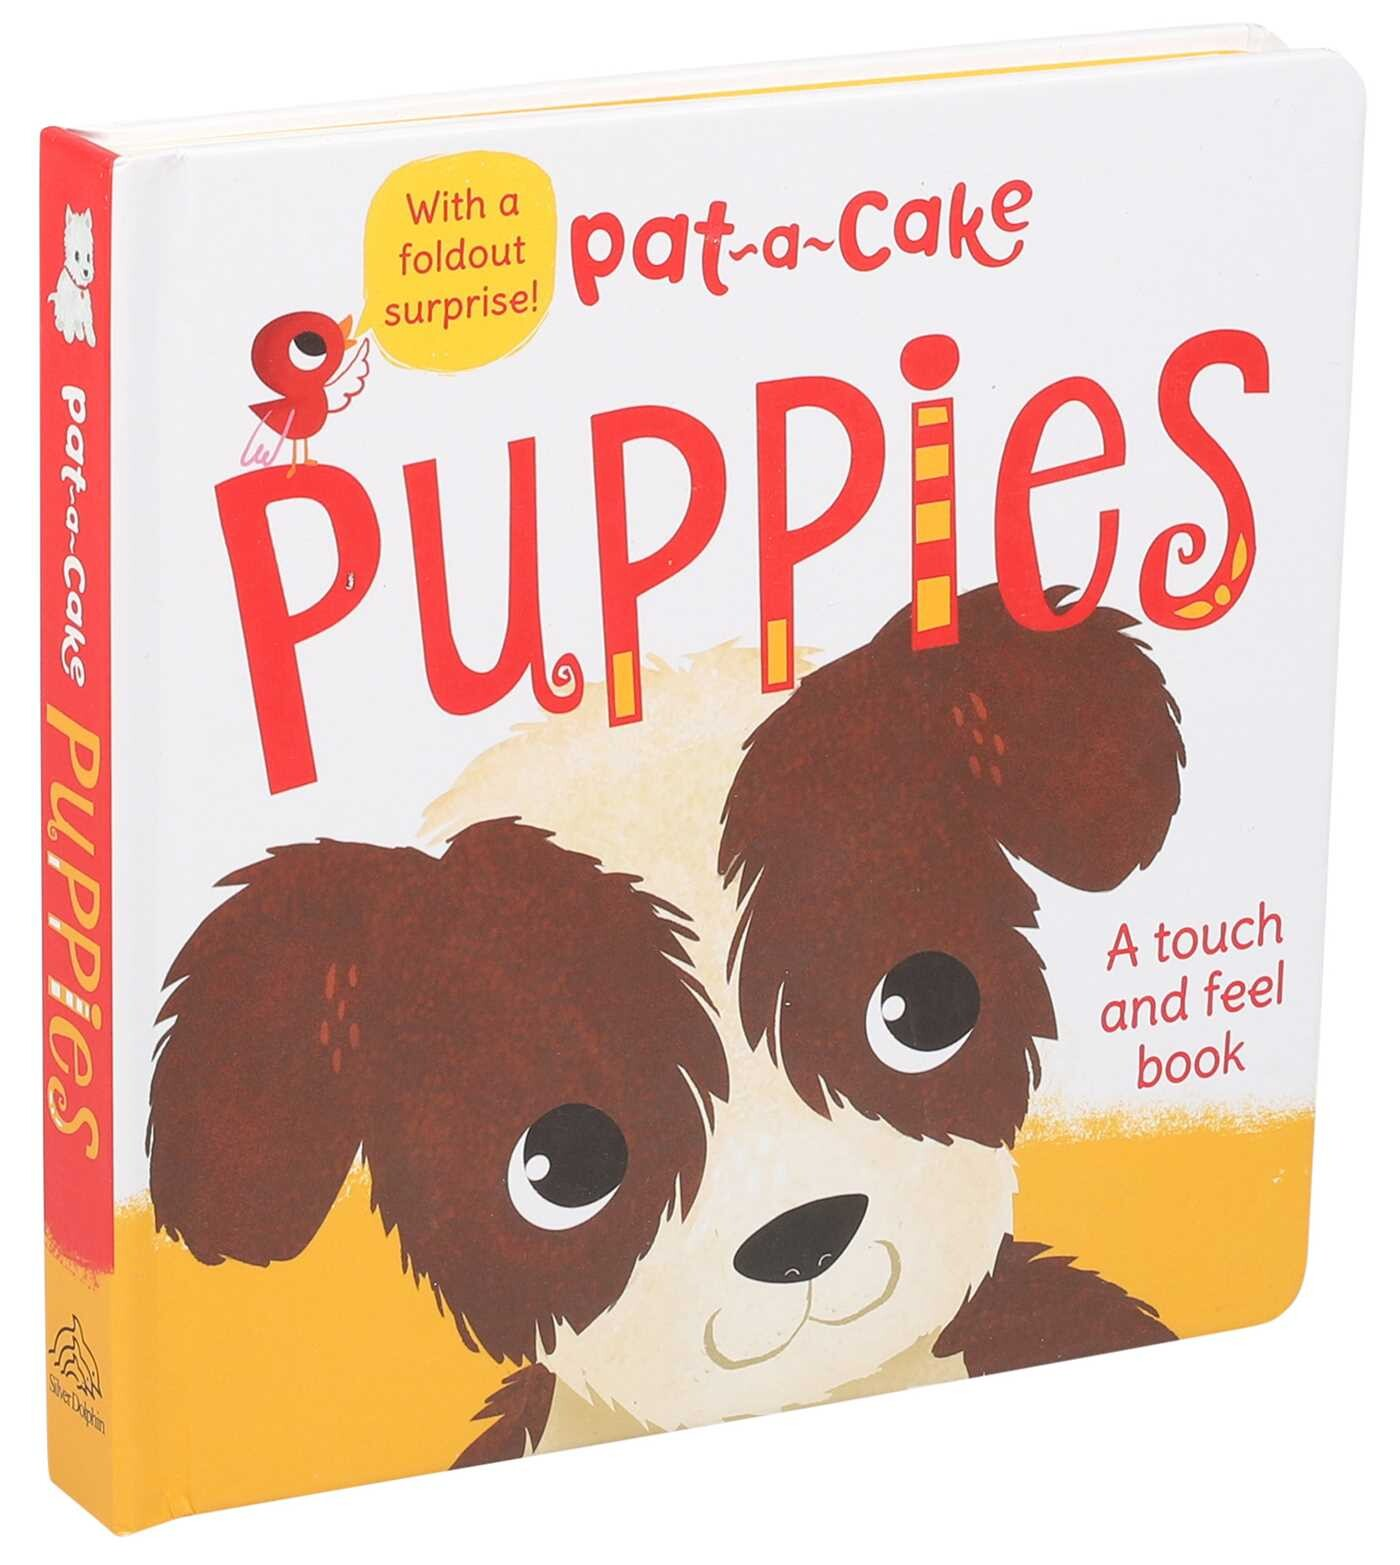 Pat a cake puppies 9781684123063.in01